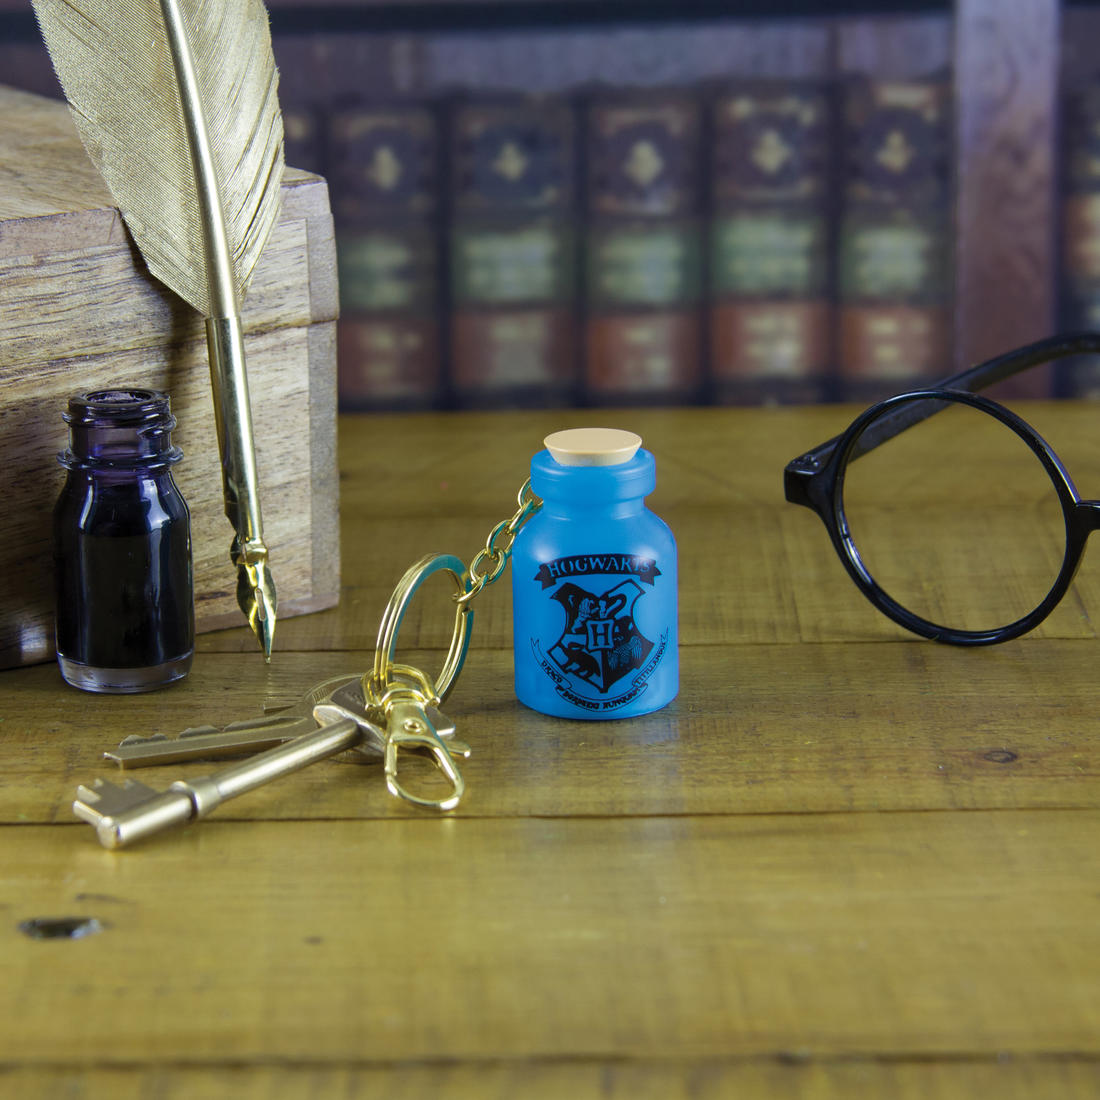 Porte-clés lumineuv Harry Potter potion magique